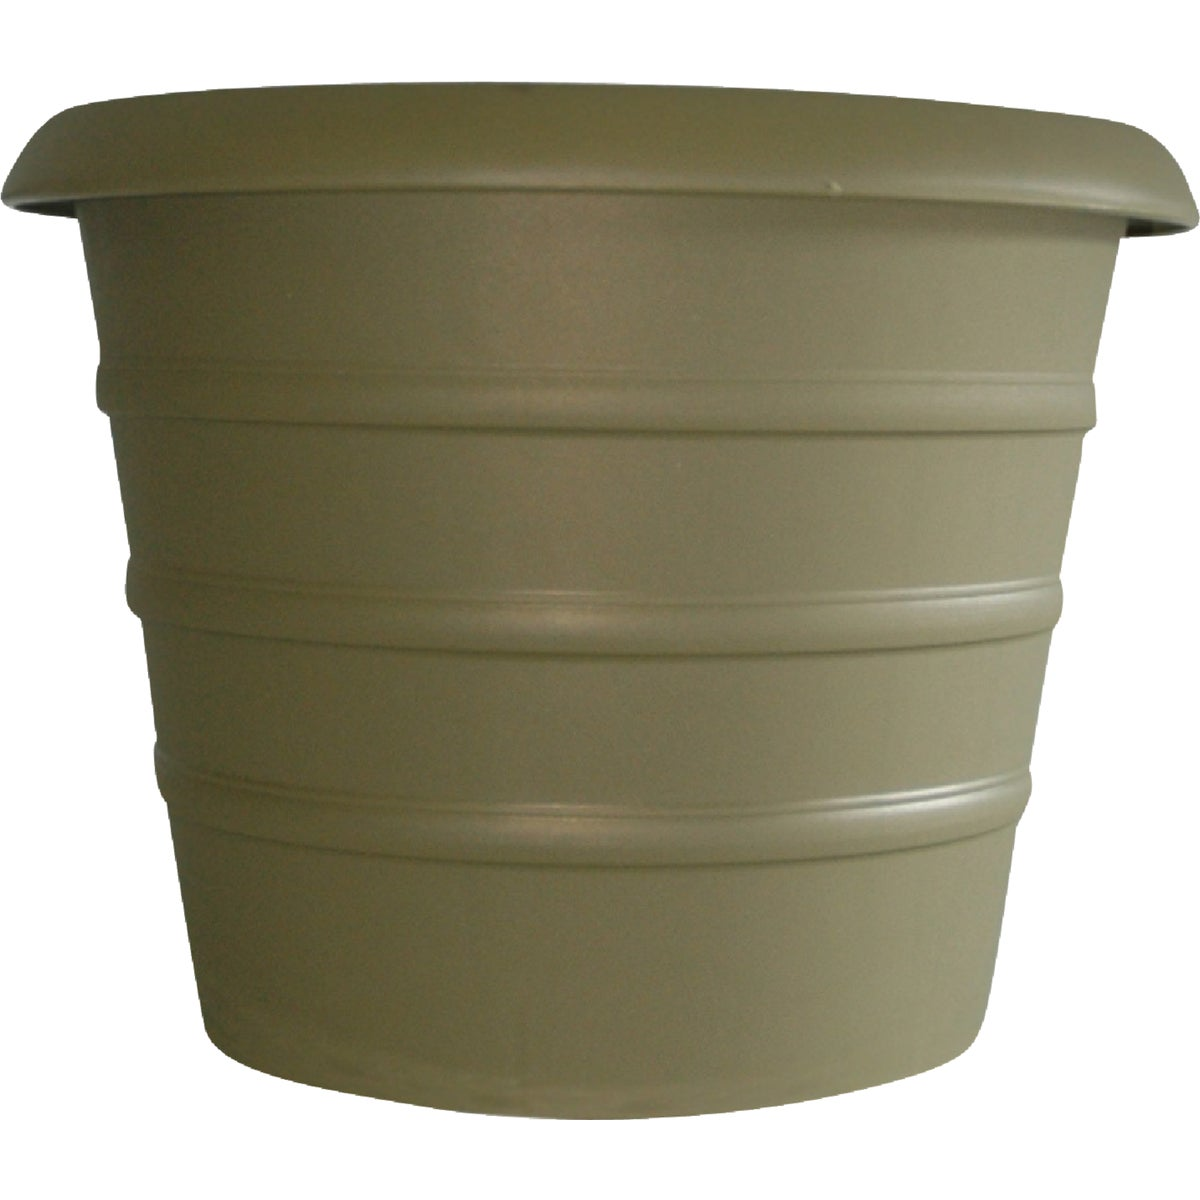 "20""SL GREEN MARINA POT - MSA20001B15 by Myers Industries Inc"